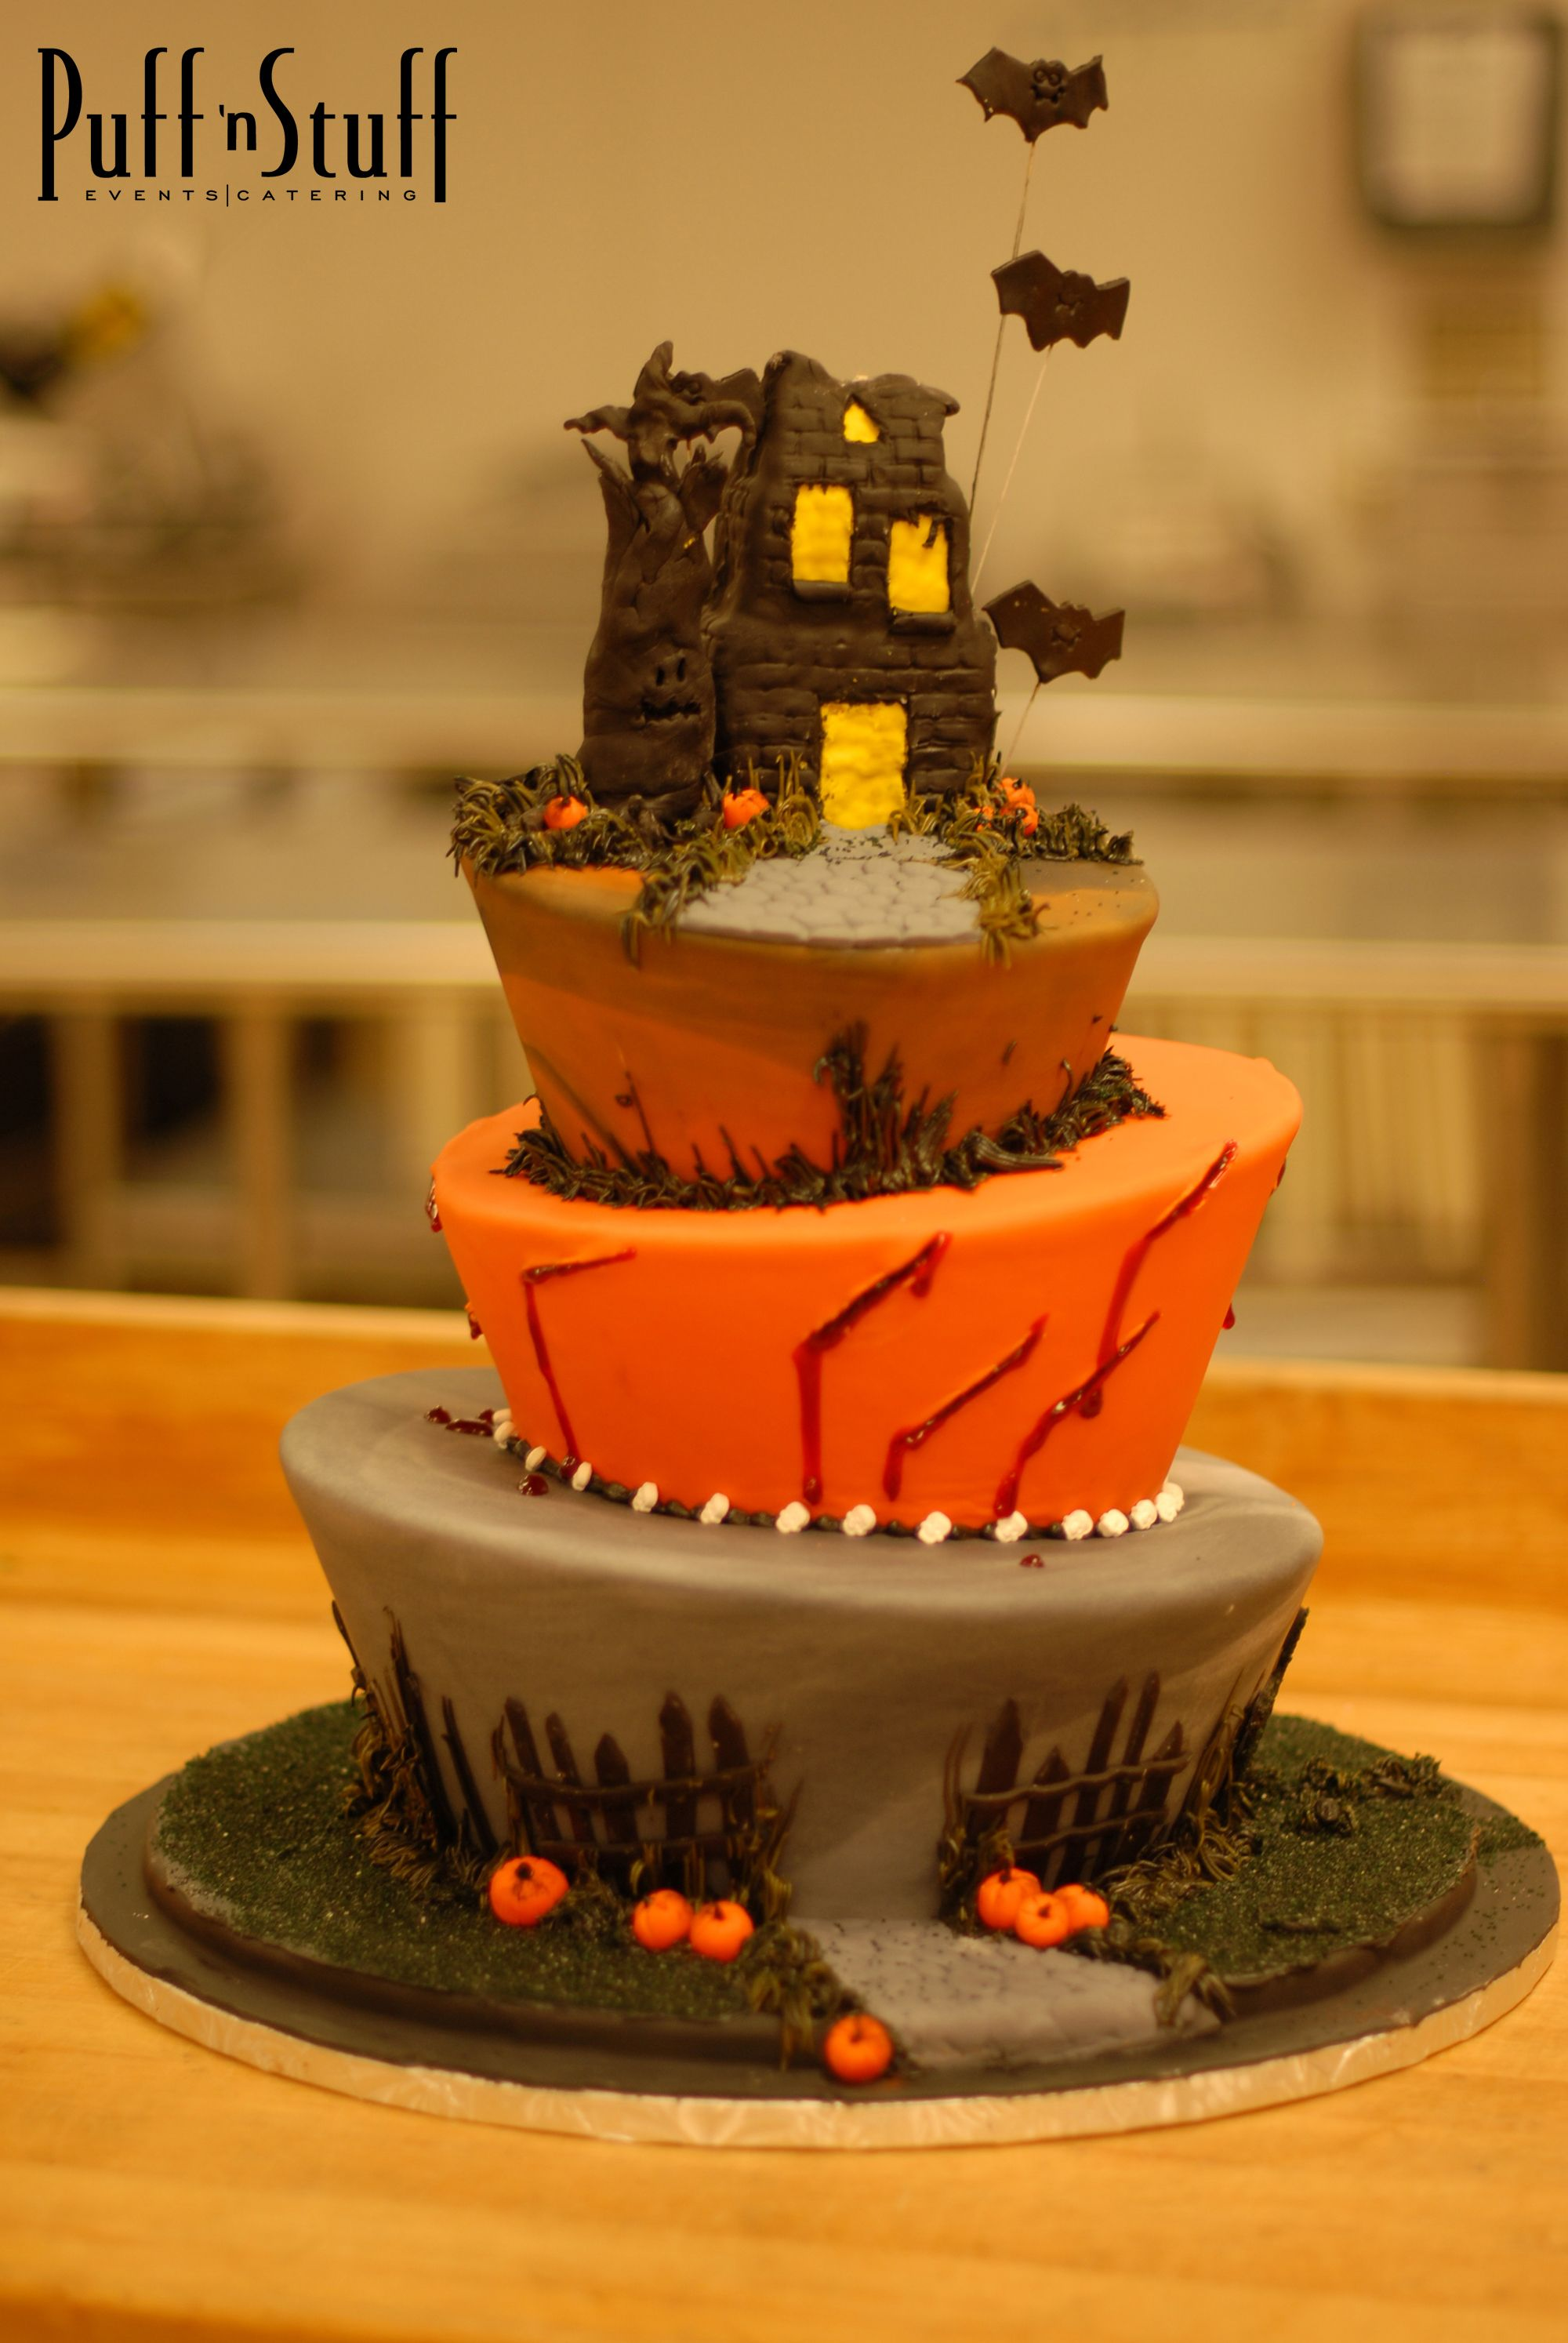 Are you ready for a spooktacular halloween The Puff n Stuff Catering bakery